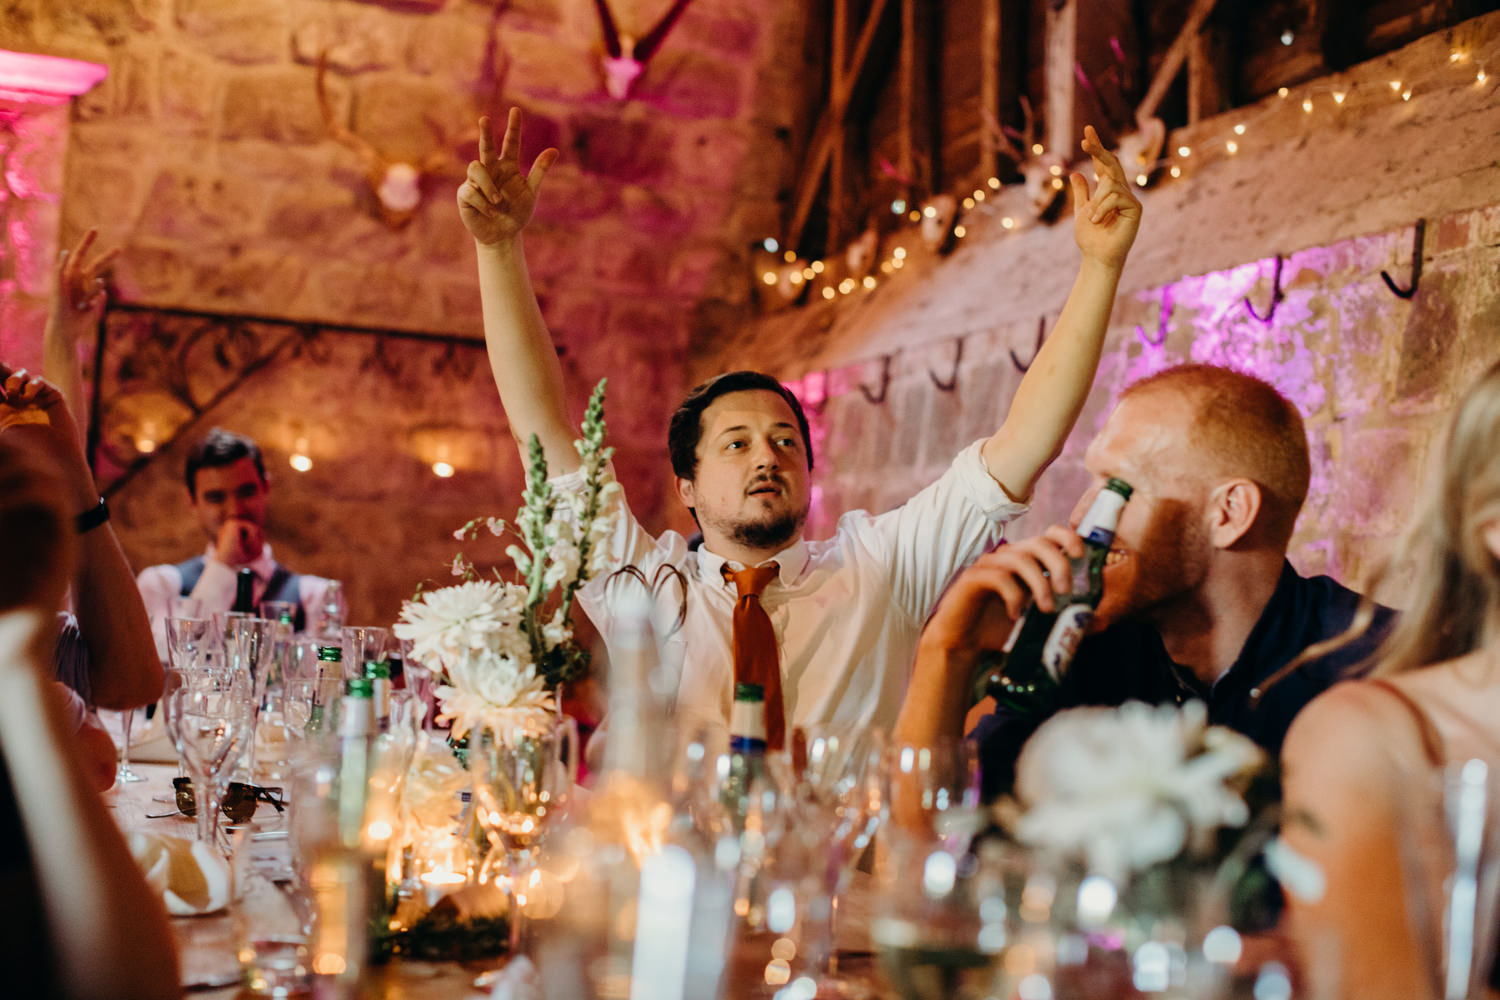 Man puts hands up at wedding